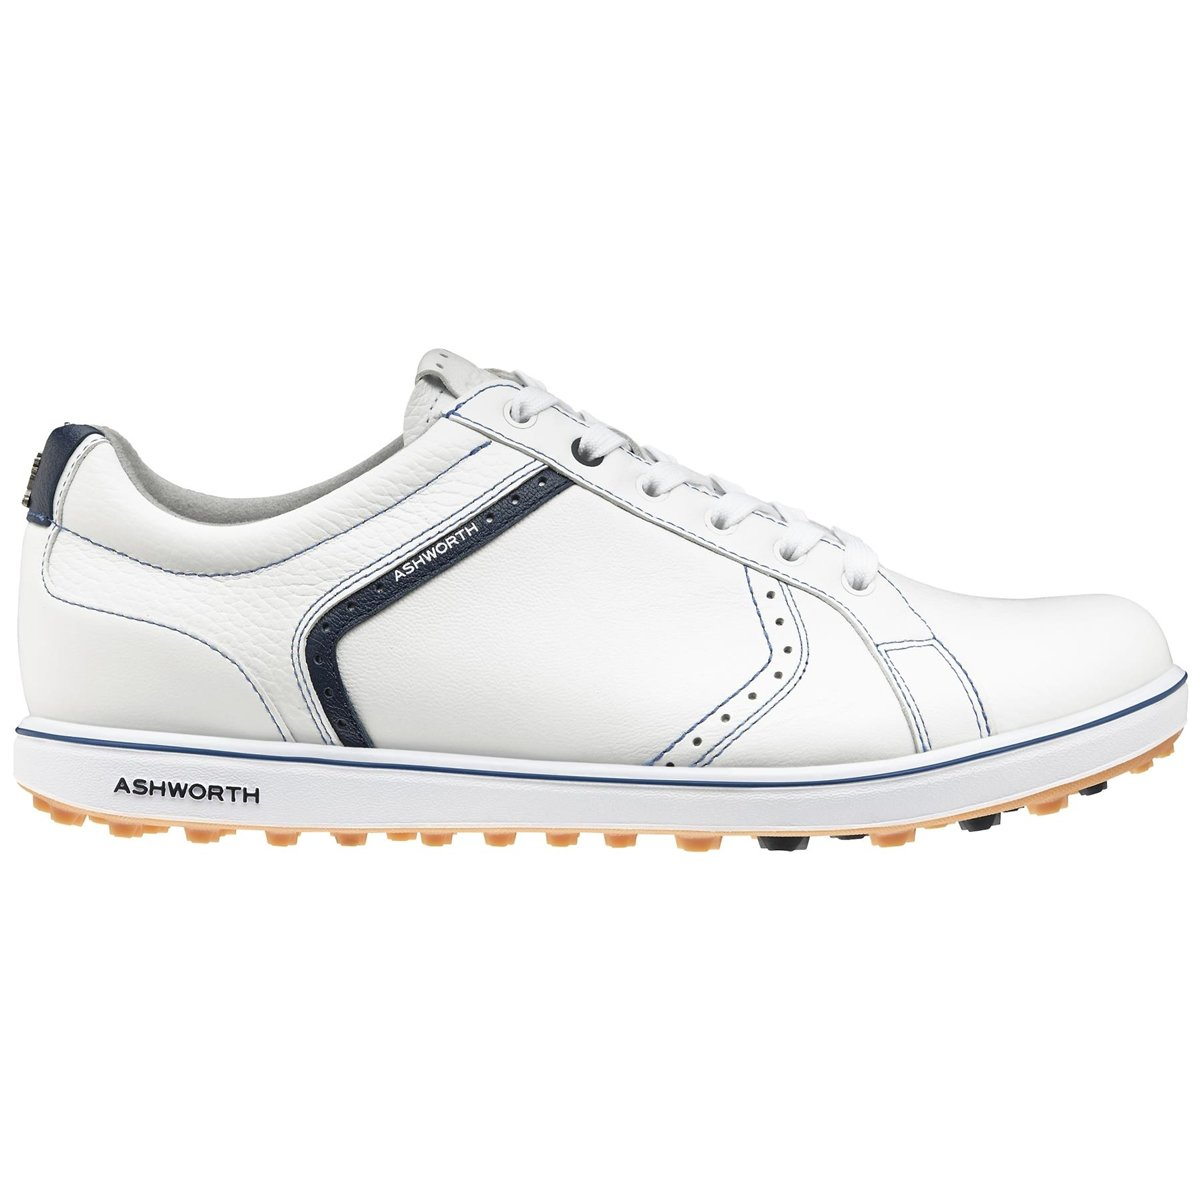 Reebok Spikeless Golf Shoes